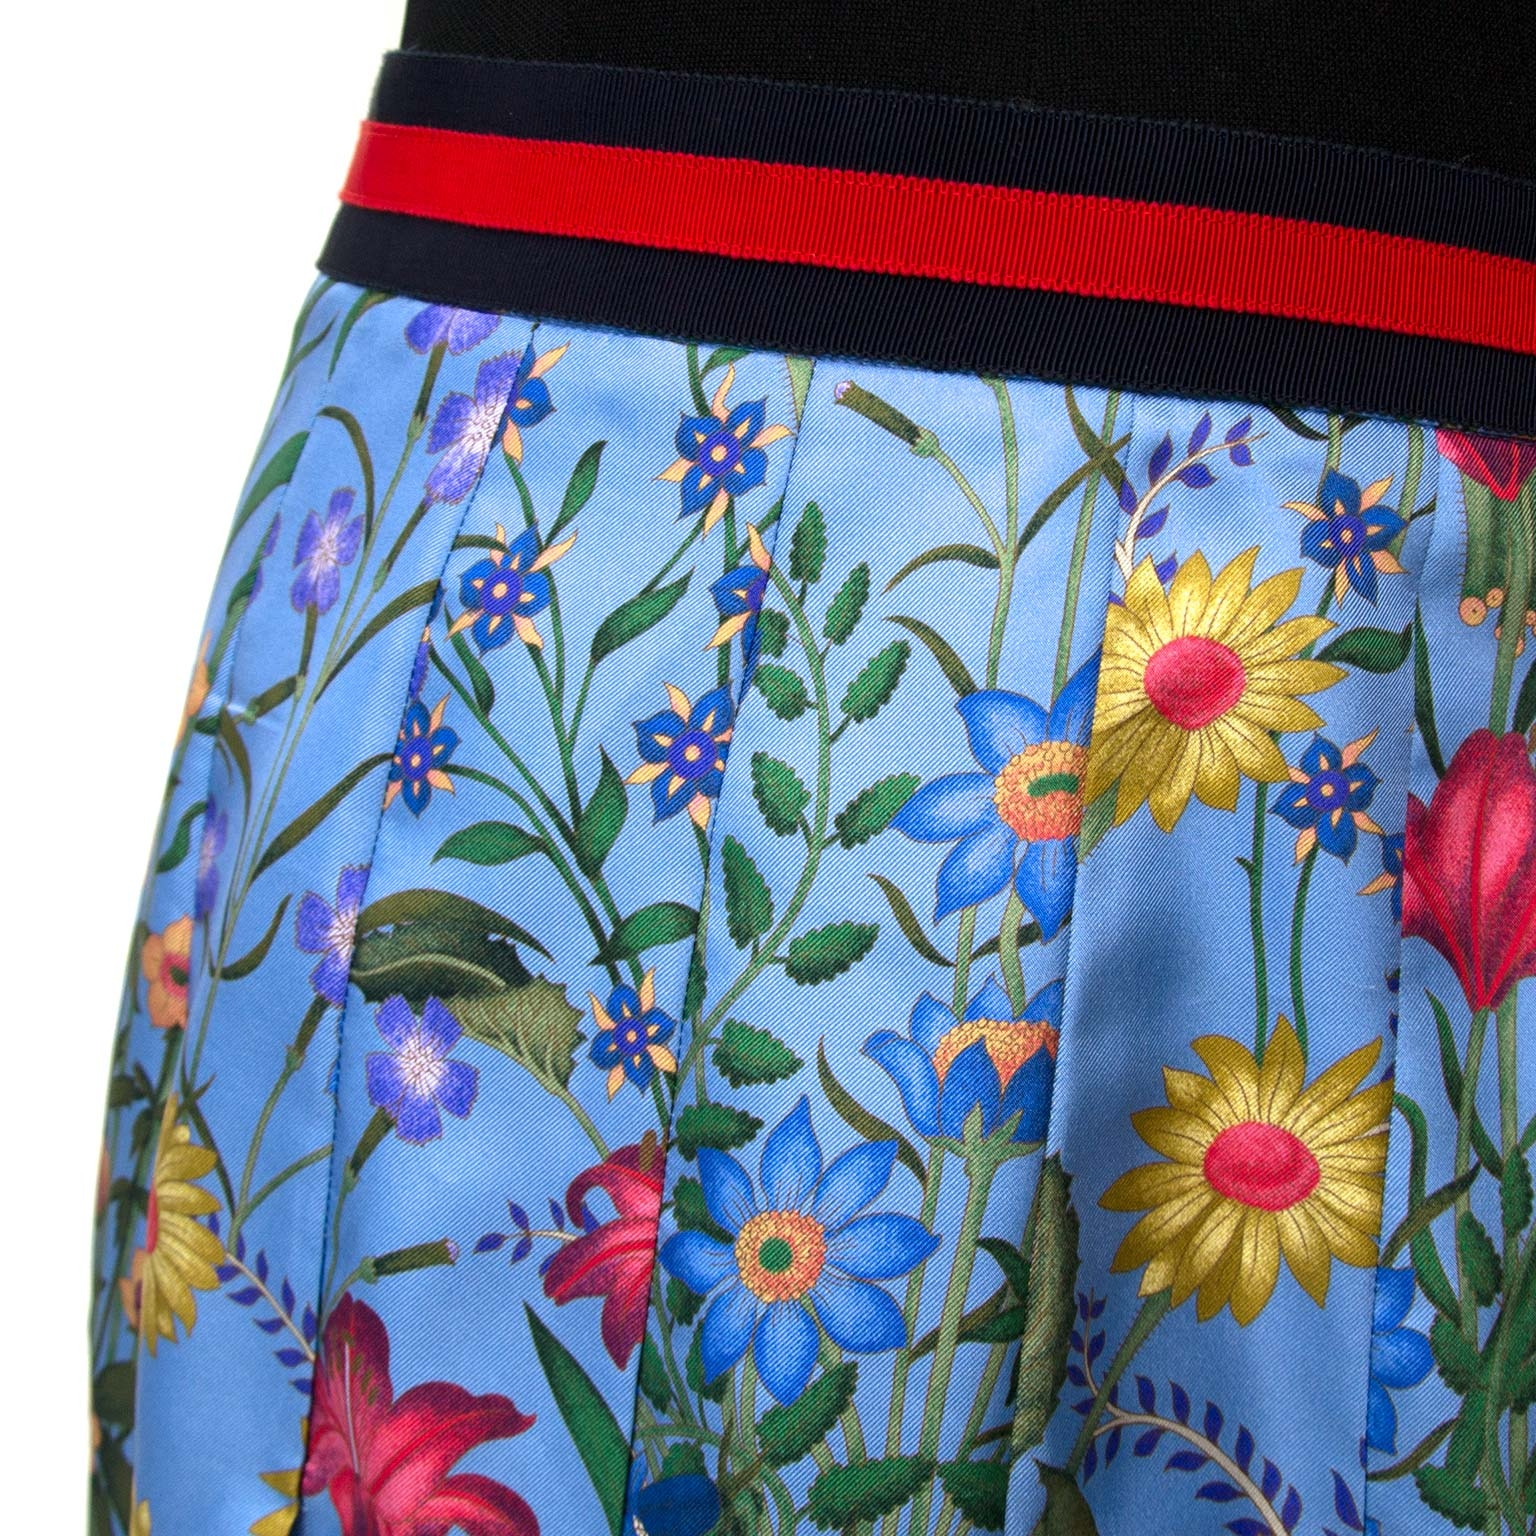 Gucci Blue Flora Skirt - Size EU 36